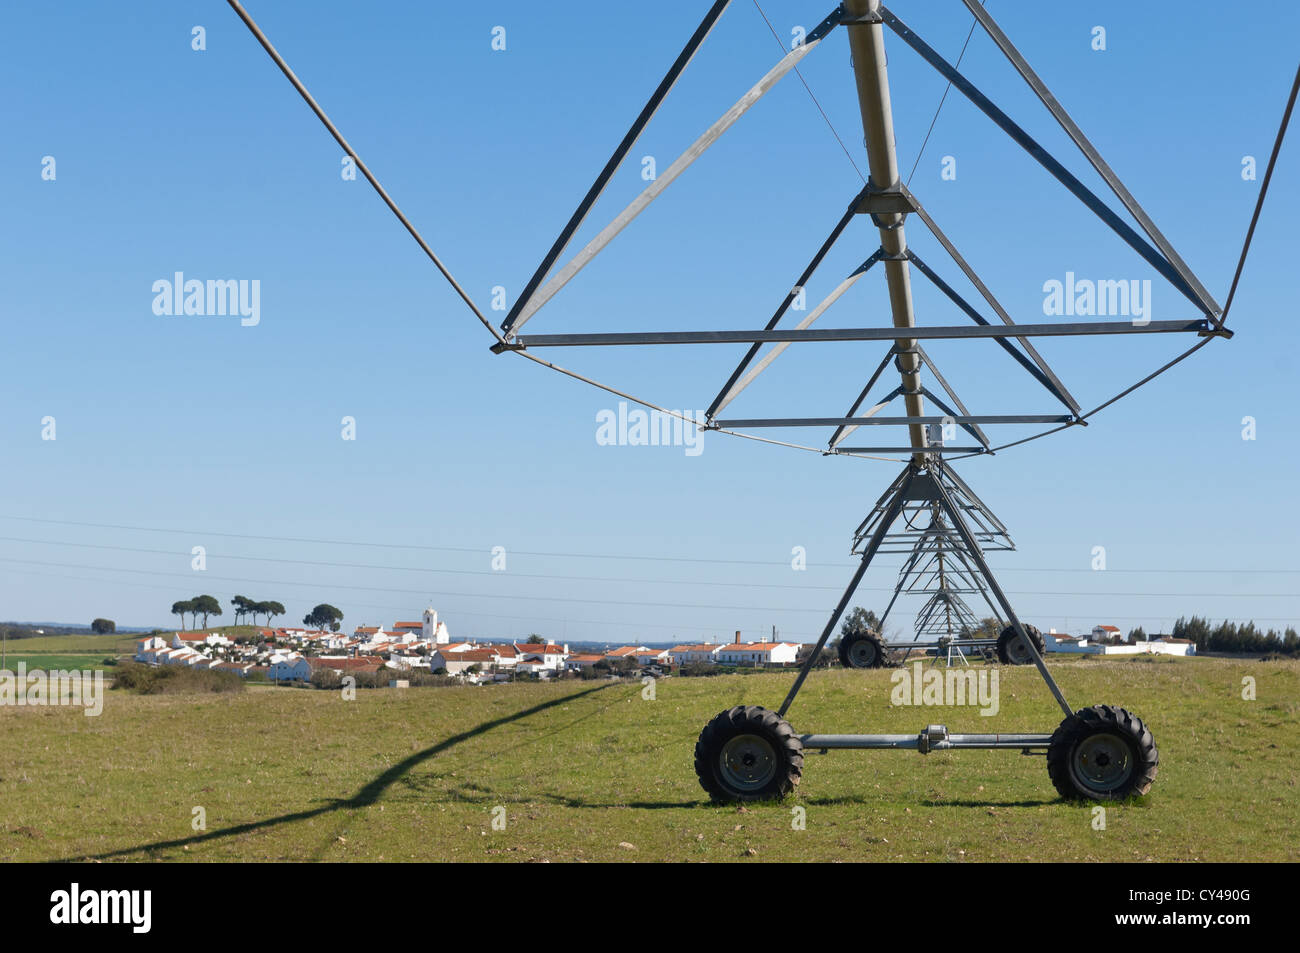 Irrigation pivot resting in a grass field of Alentejo, Portugal - Stock Image